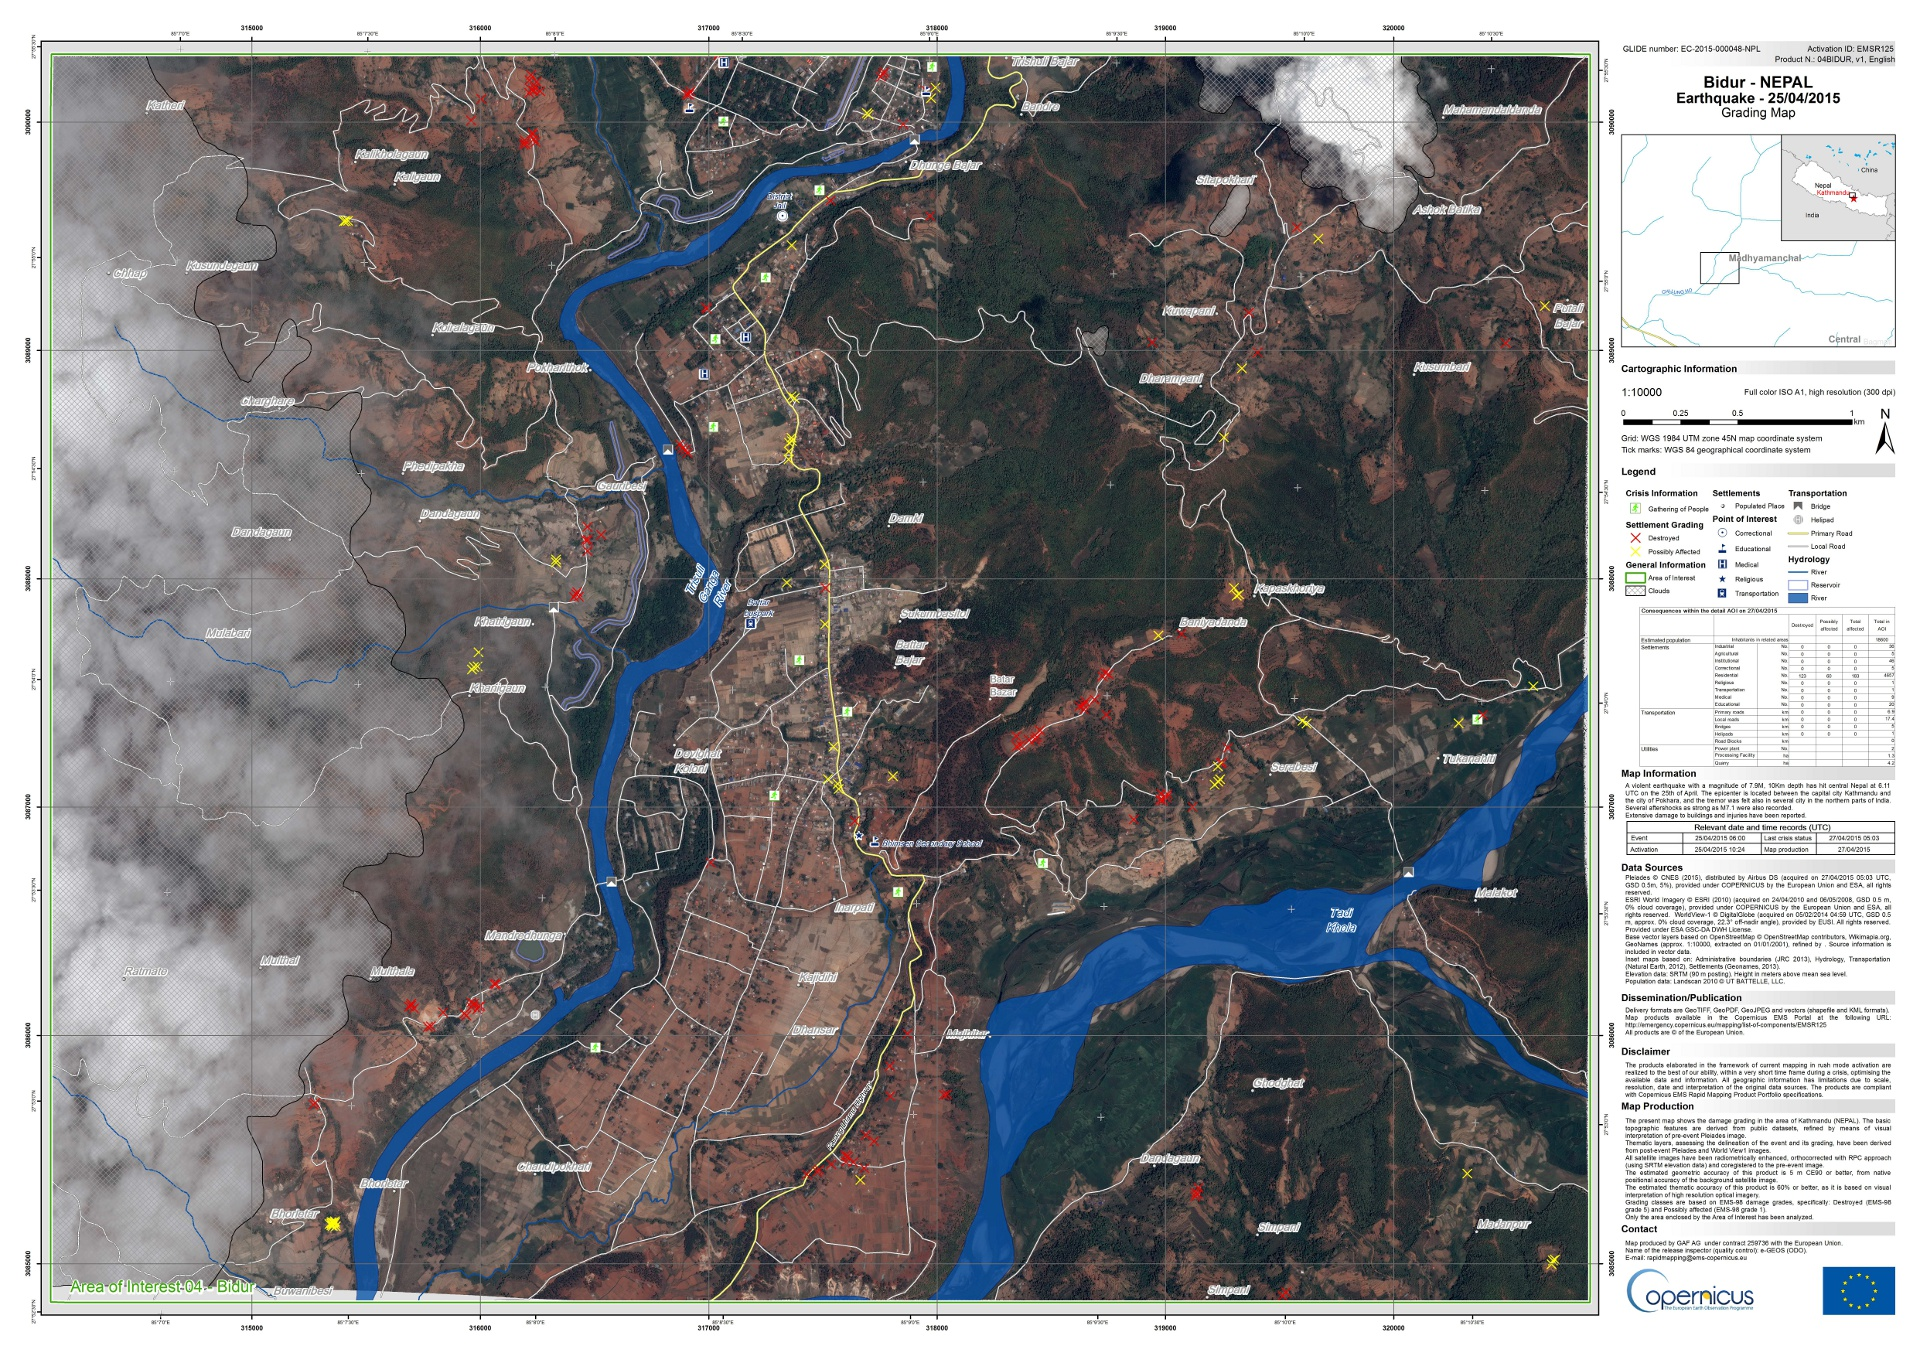 Nepal - Earthquake - Bidur - Copernicus - Emergency Mapping Service - Rapid mapping - Grading map - European Commission - Pleiades - GAF - EMSR 125